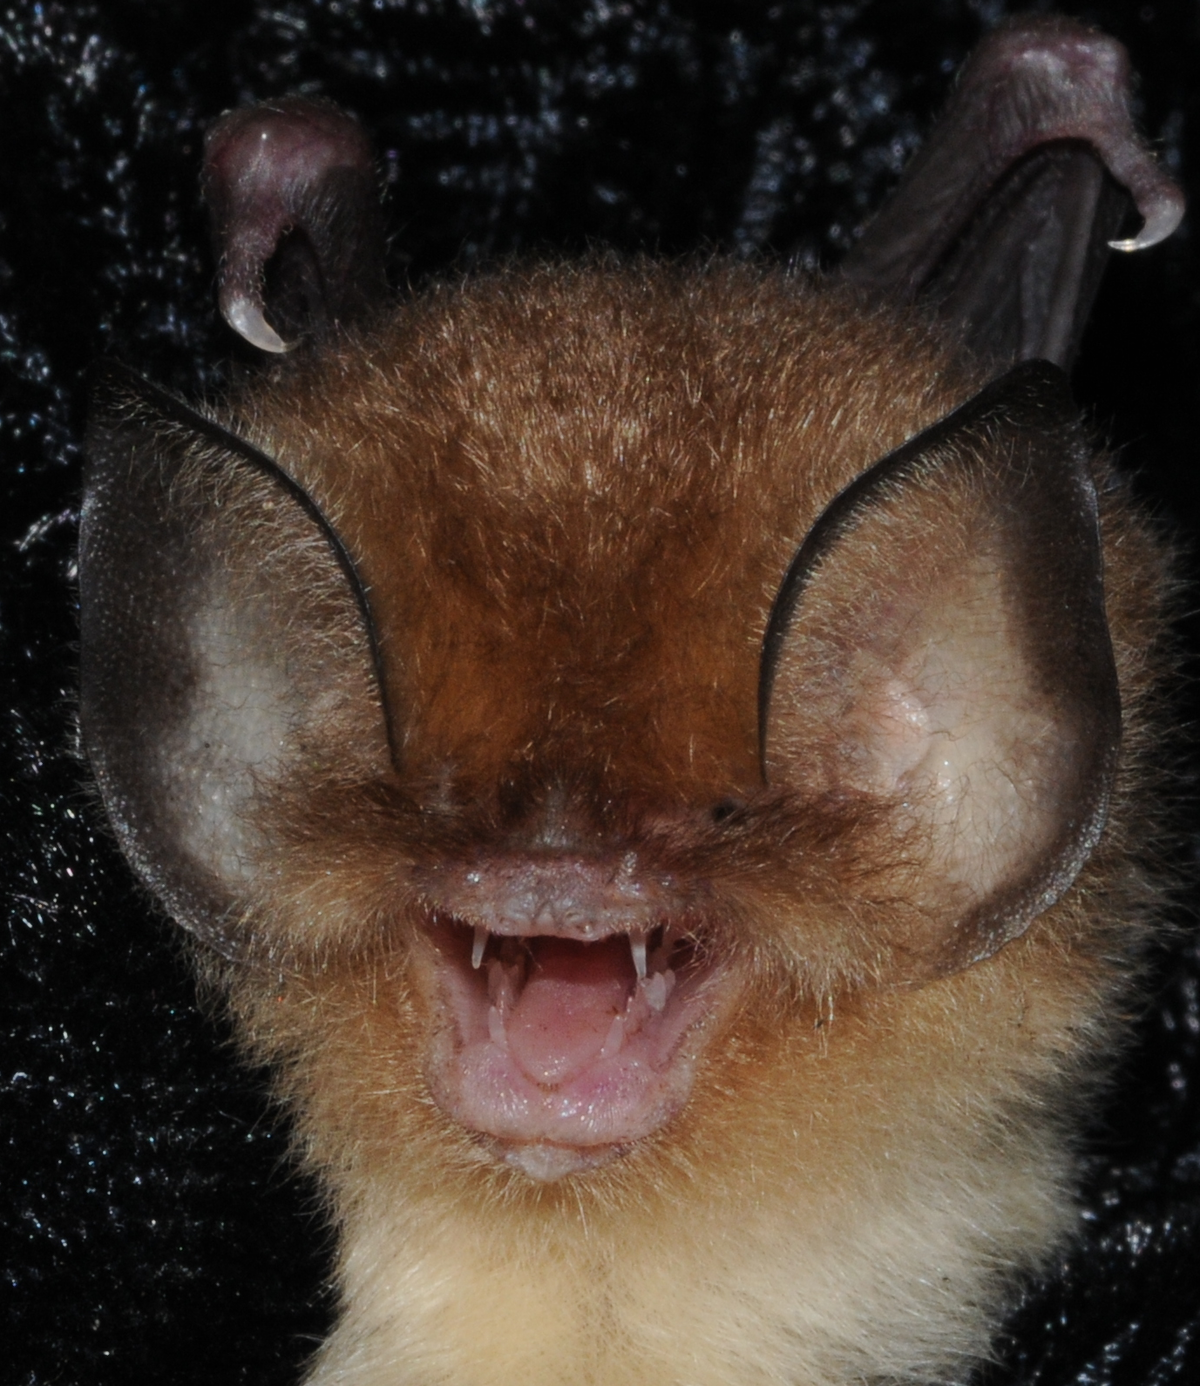 Cuban funnel-eared bat - Wikipedia